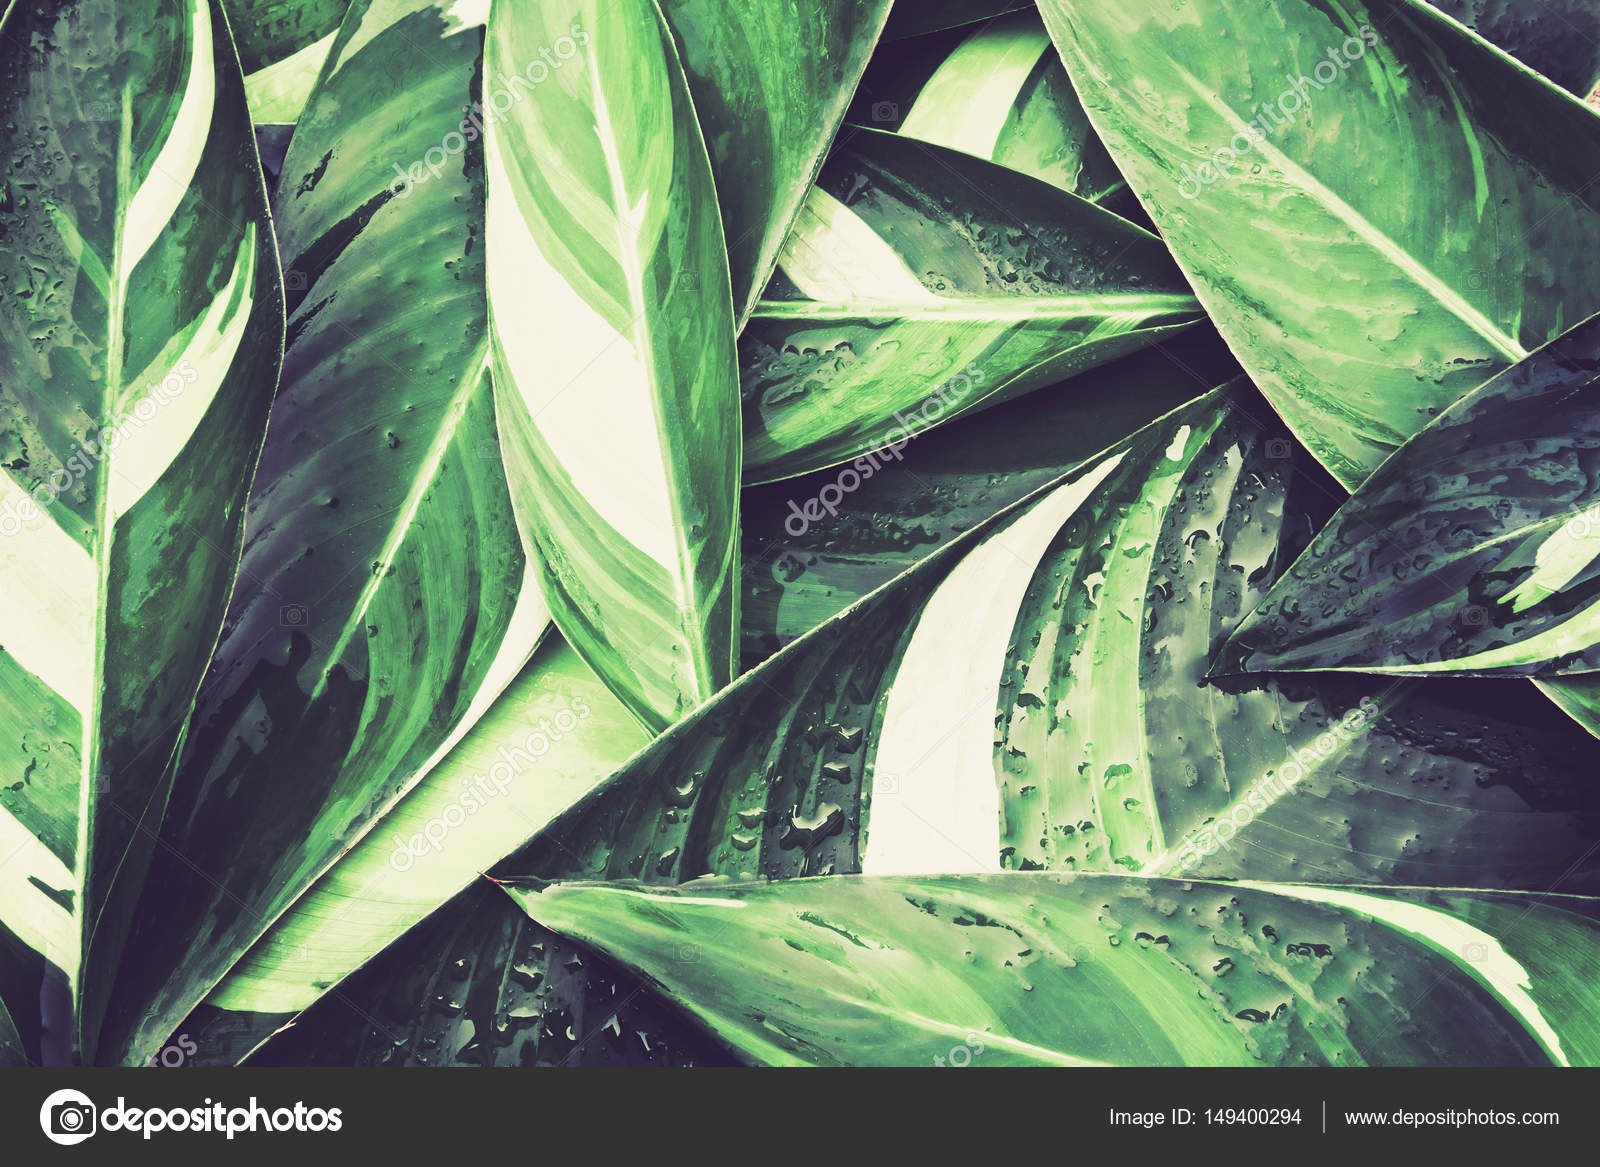 Wet Fresh Tropical Green Leaves Background Vintage Color Tone Stock Photo C Photorista 149400294 Tons of awesome green tropical leaves wallpapers to download for free. https depositphotos com 149400294 stock photo wet fresh tropical green leaves html